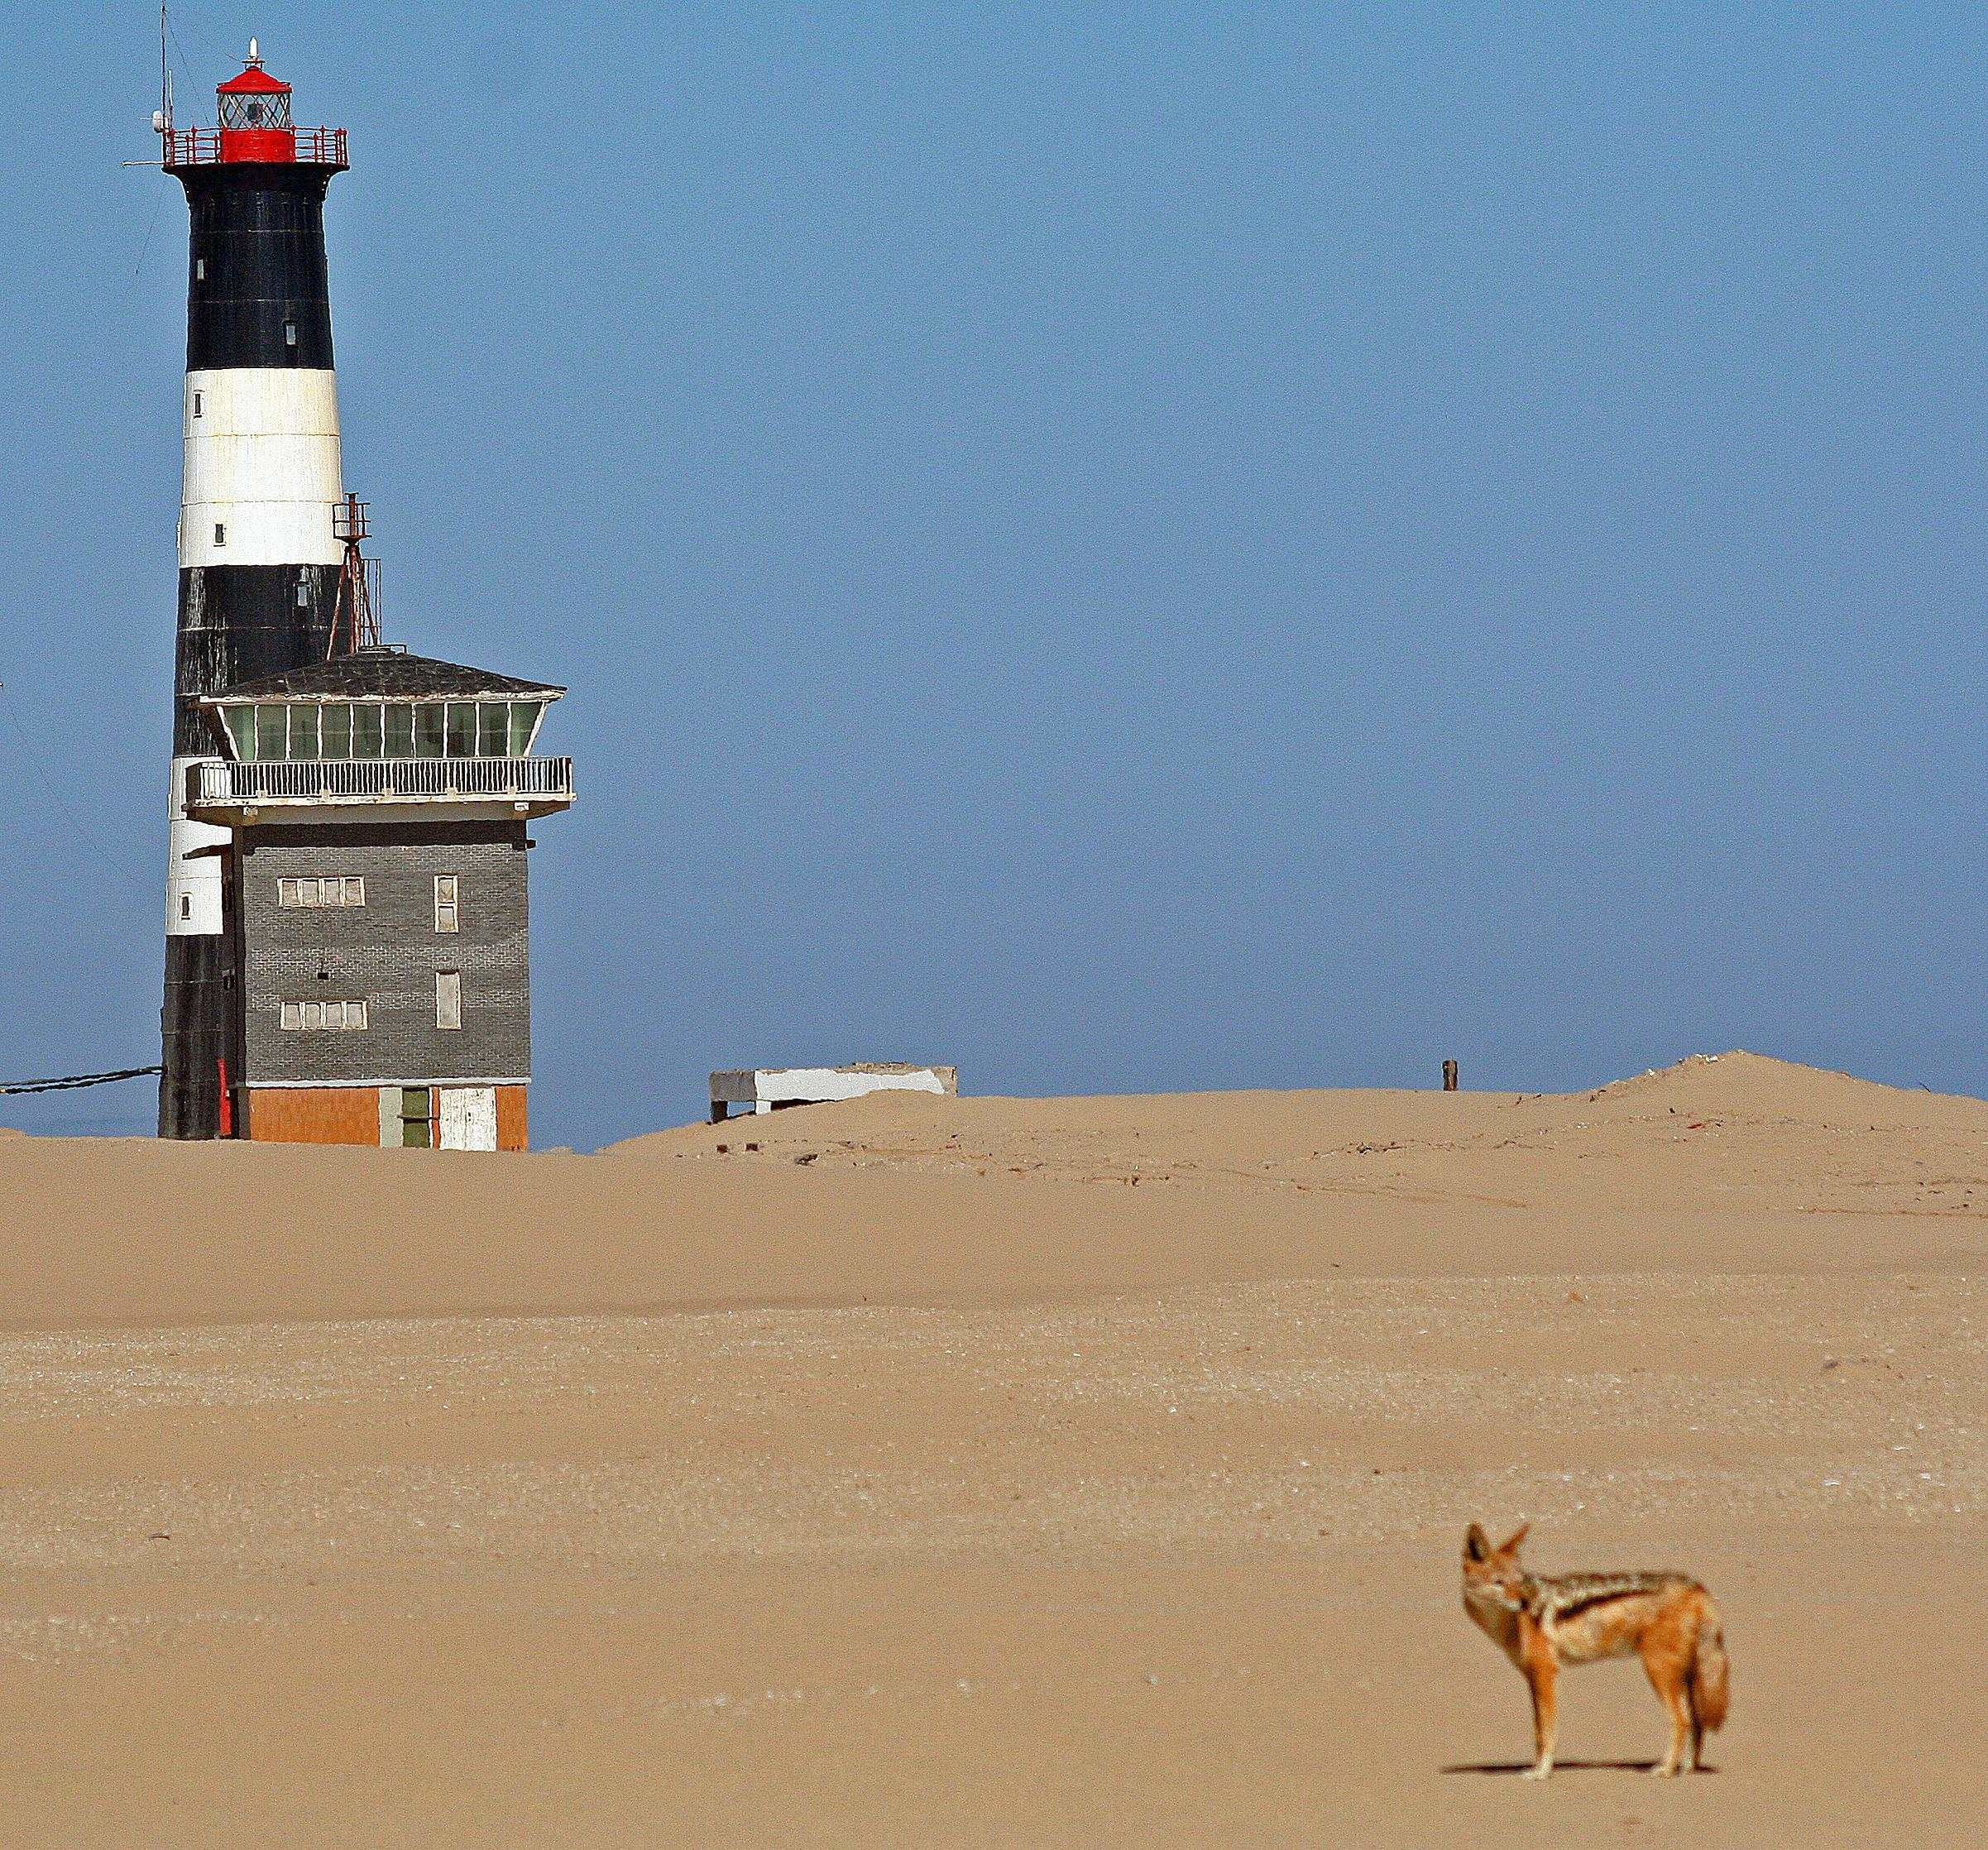 Jackal at Lighthouse on Pelican Point